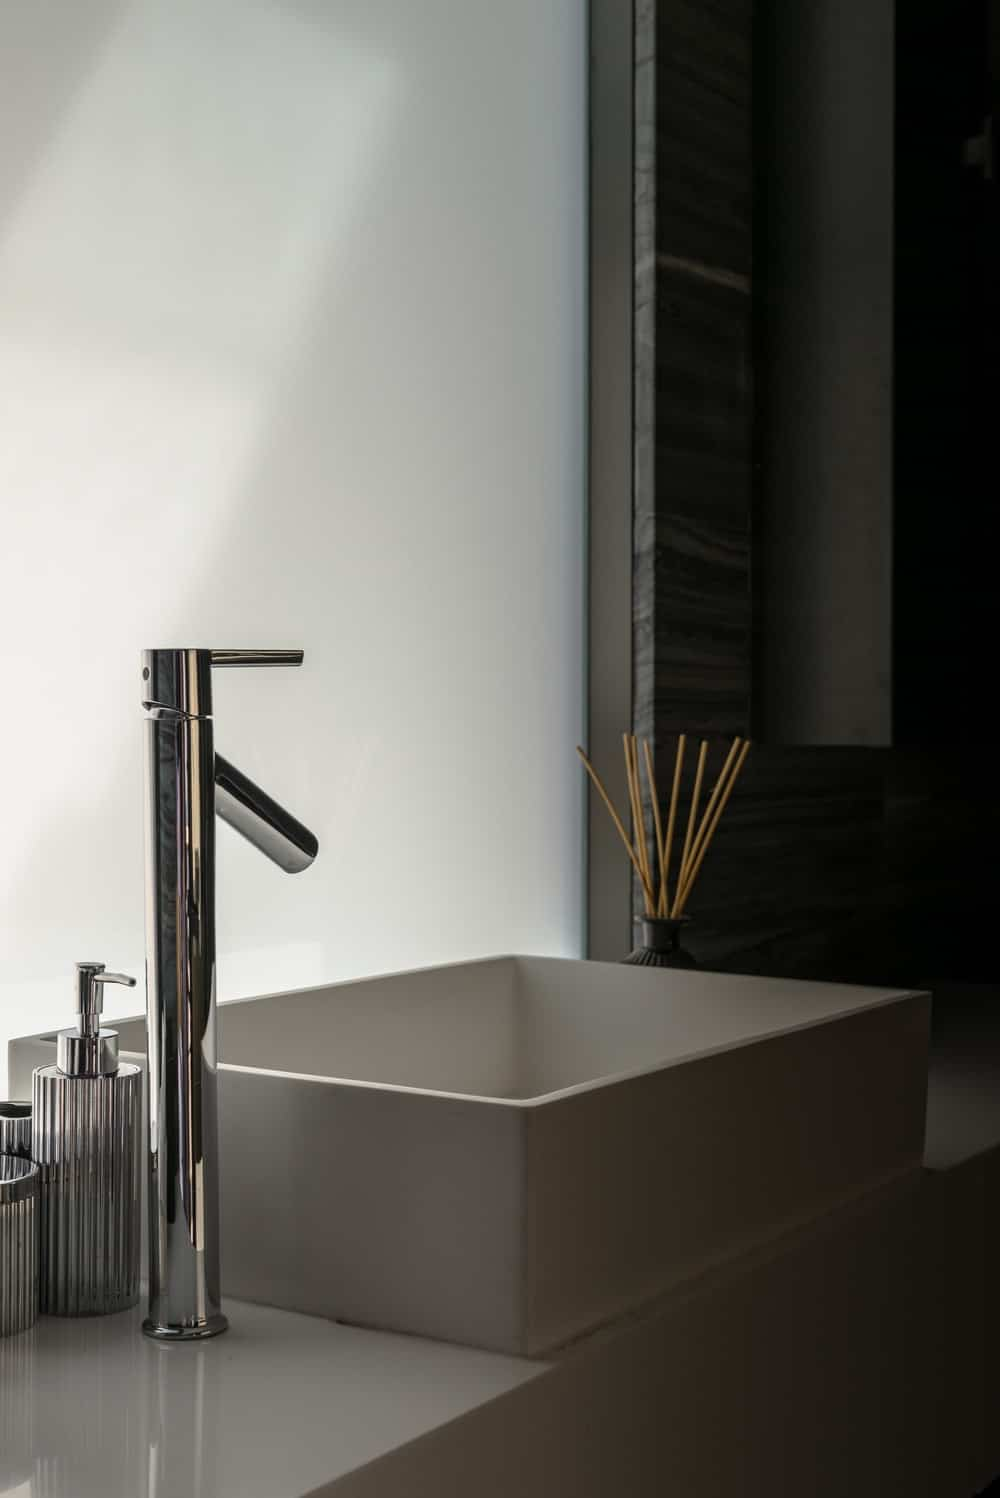 The opaque glass panel still allows an abundance of natural lighting to go into the bathroom.